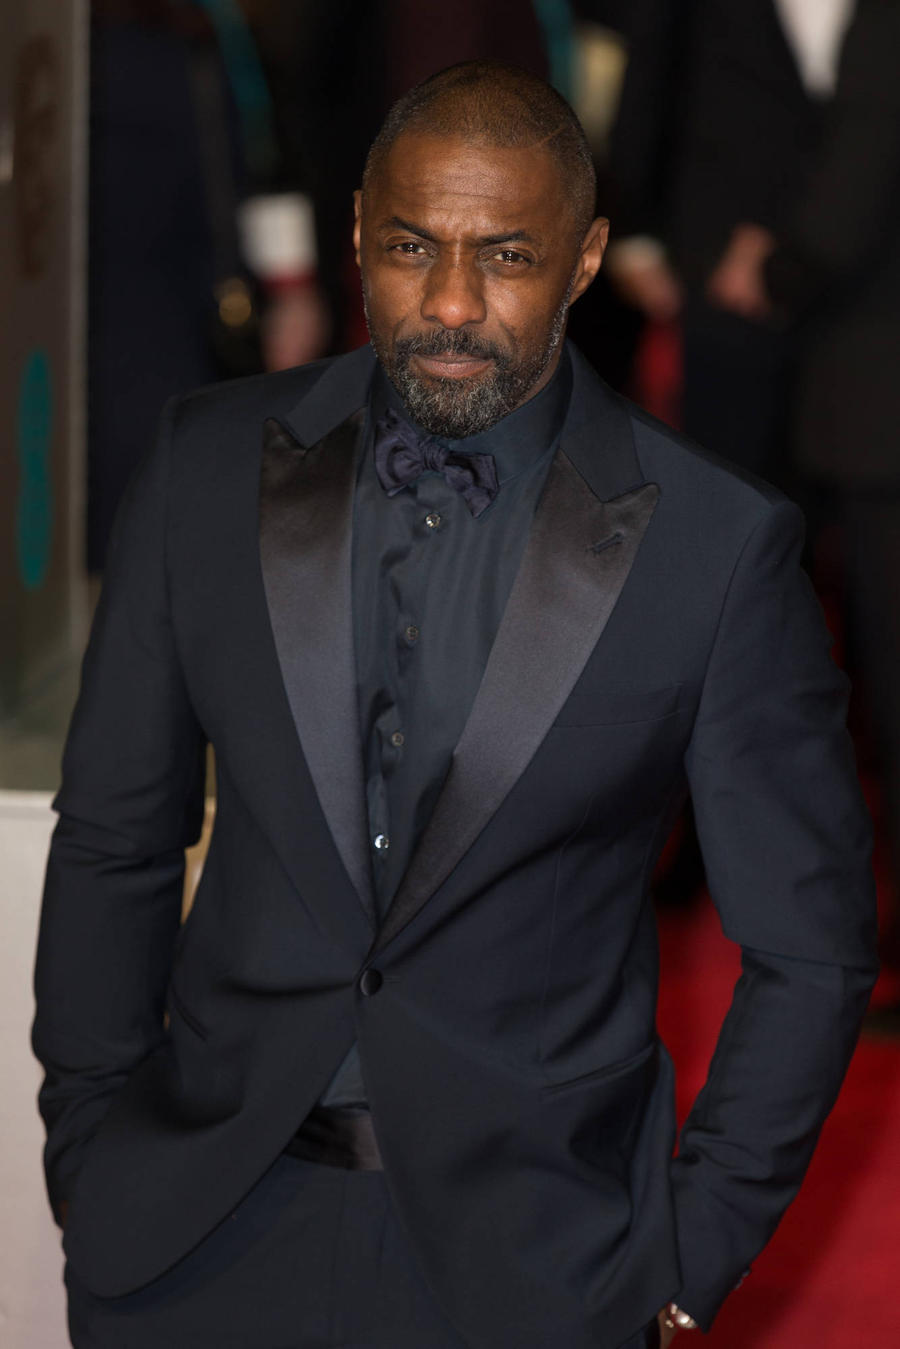 Adverts For Idris Elba's Bastille Day Movie Pulled In Wake Of Nice Attack